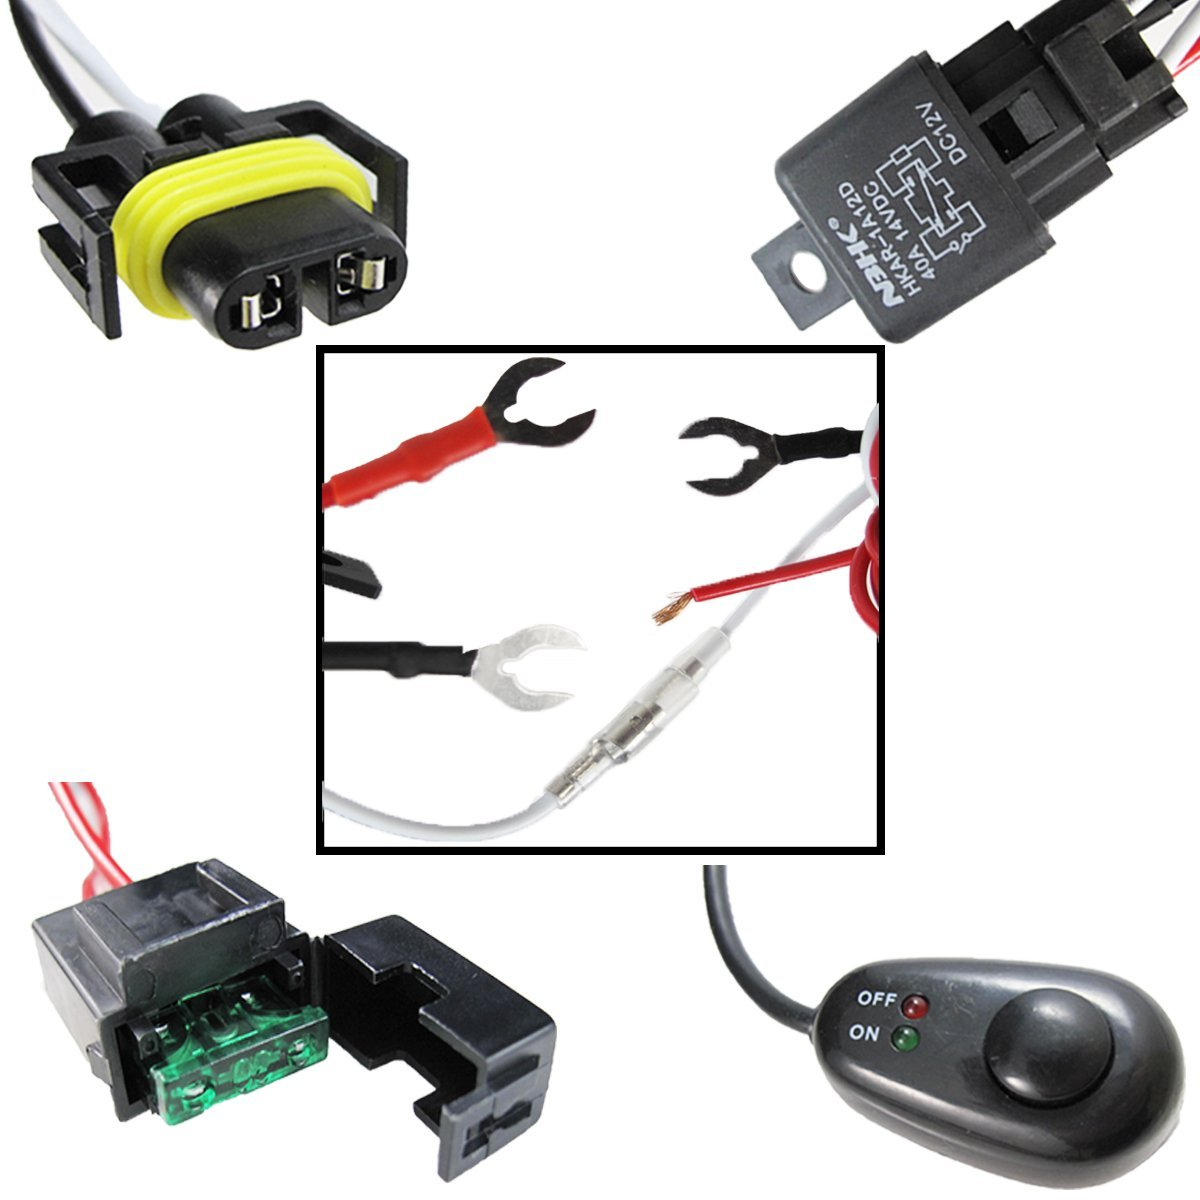 H11 H8 Relay Harness Wire Kit Led On Off Switch For Hella Wiring Toyota 4runner Aftermarket Fog Lights Driving Hid Conversion Work Lamp